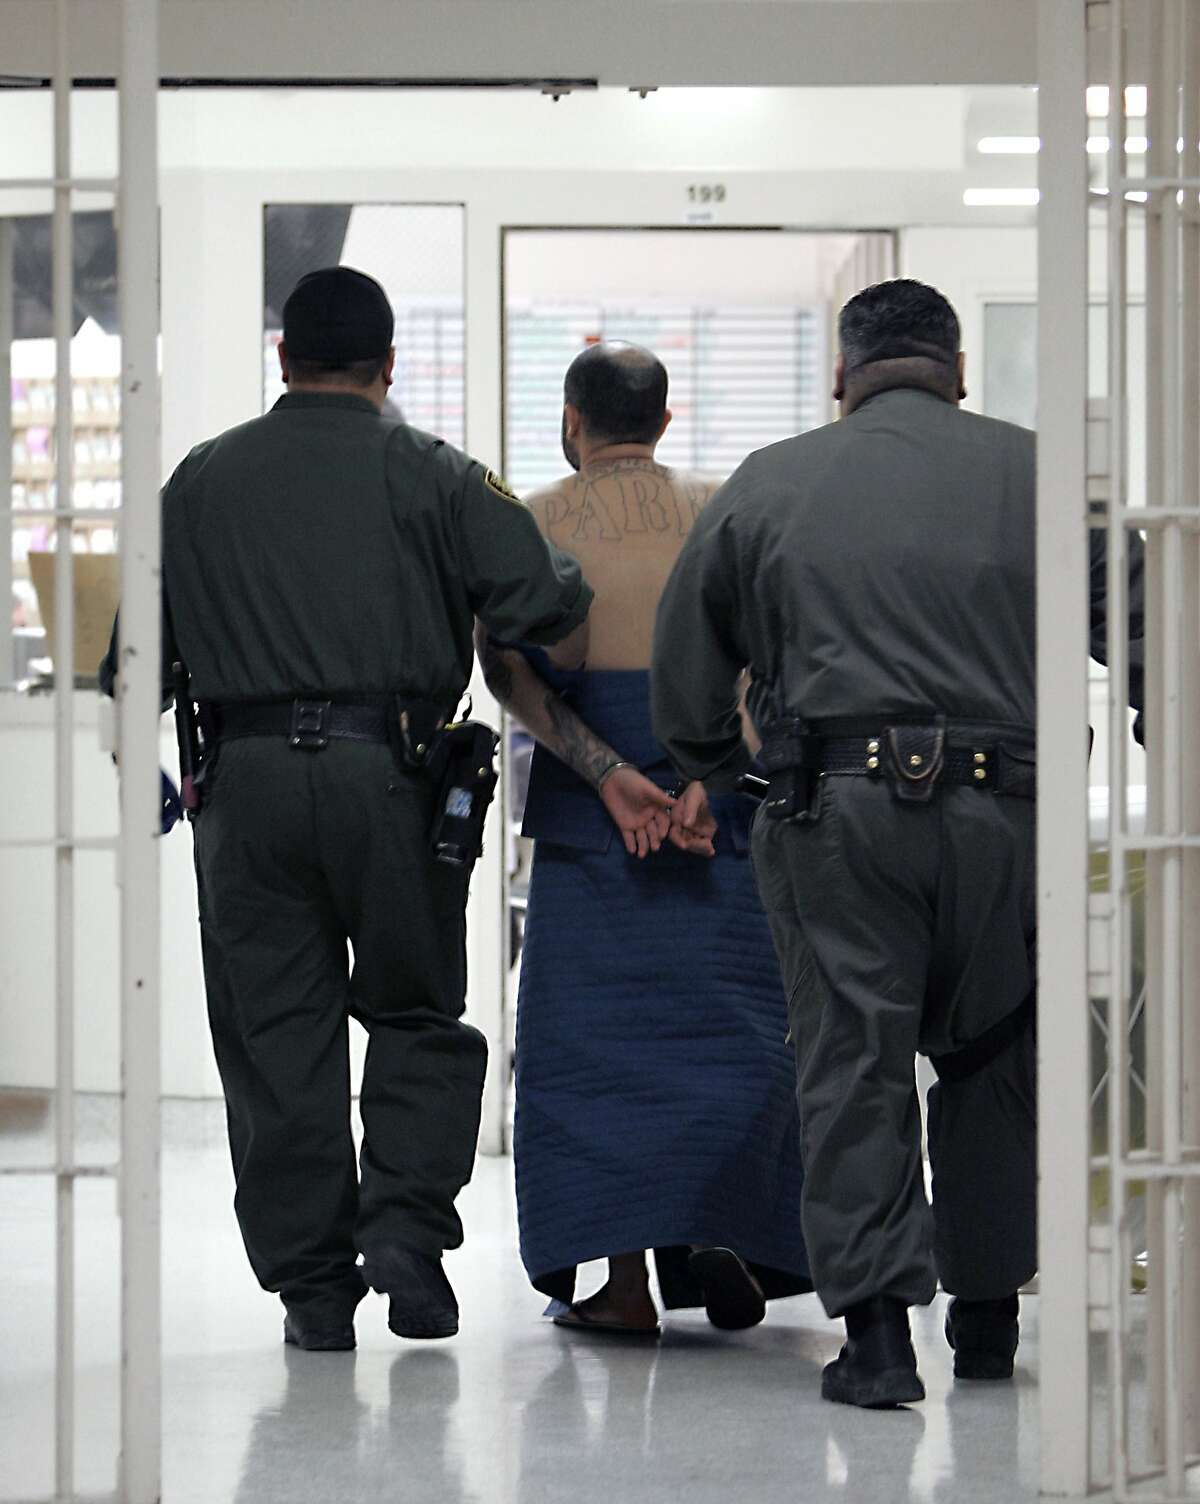 FILE- In this Jan. 14, 2009 file photo, an inmate, on suicide watch, is escorted by correctional officers at the California Substance Abuse Treatment Facility in Corcoran, Calif. A federal judge's special investigator reported Friday, May 3, 2019, that California prison officials provided misleading data on inmate mental health care, but found no intent to do so deliberately. Former U.S. Attorney Charles Stevens substantiated many of the allegations contained in a 161-page whistleblower report last year by Dr. Michael Golding, the prison system's chief psychiatrist. (AP Photo/Rich Pedroncelli, File)